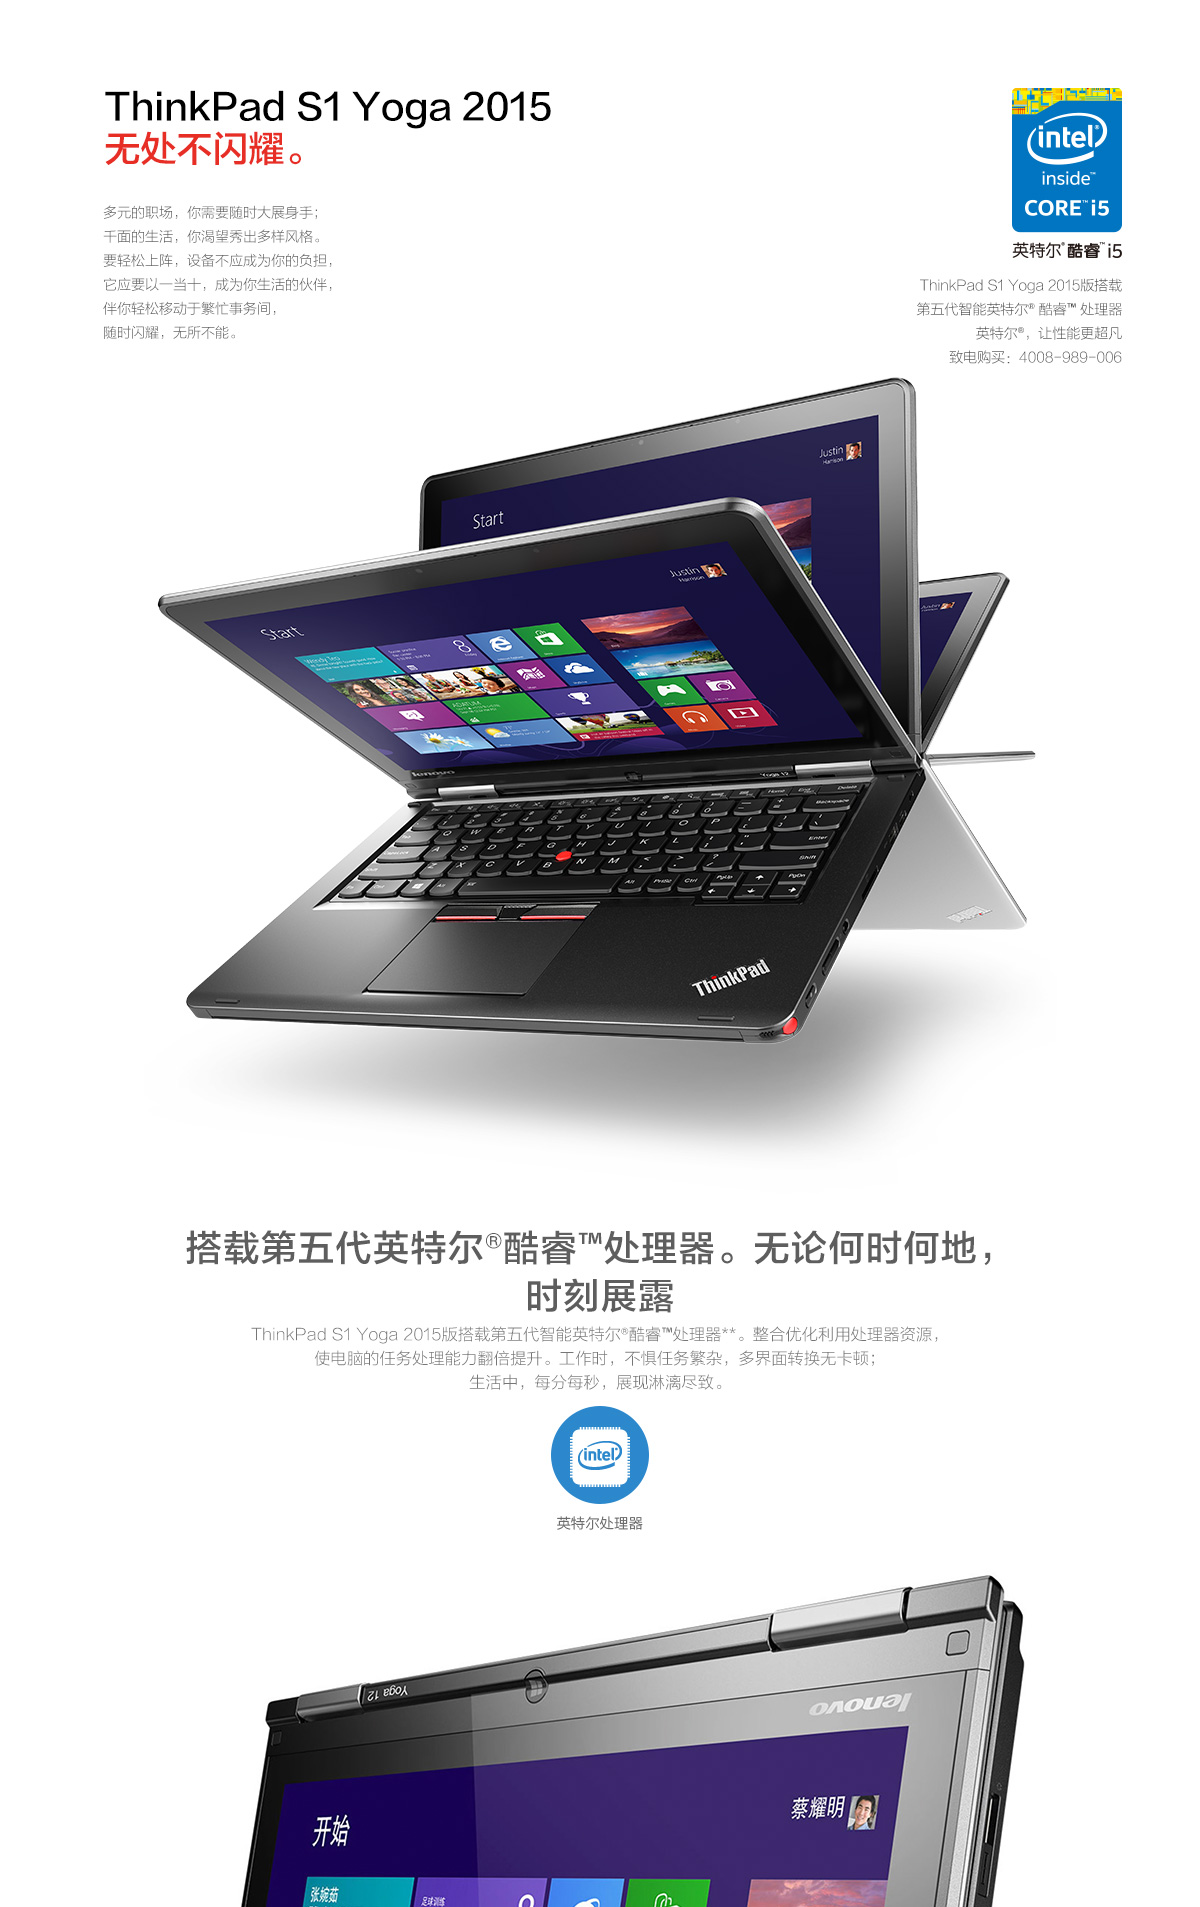 ThinkpadS1 Yoga 2015(PC)1